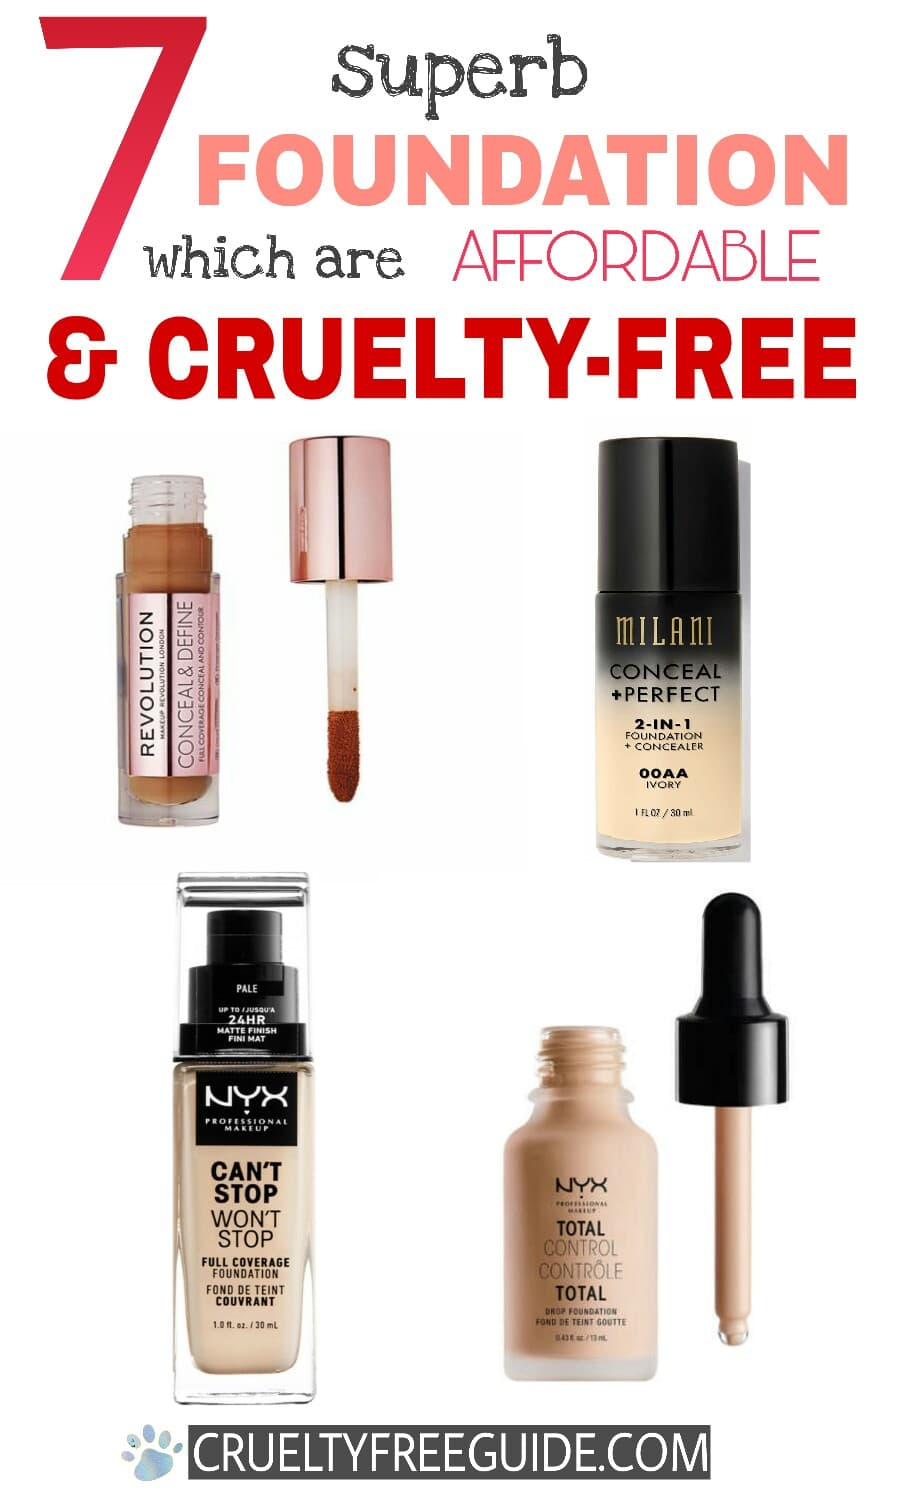 Cruelty Free Drugstore Foundation Affordable